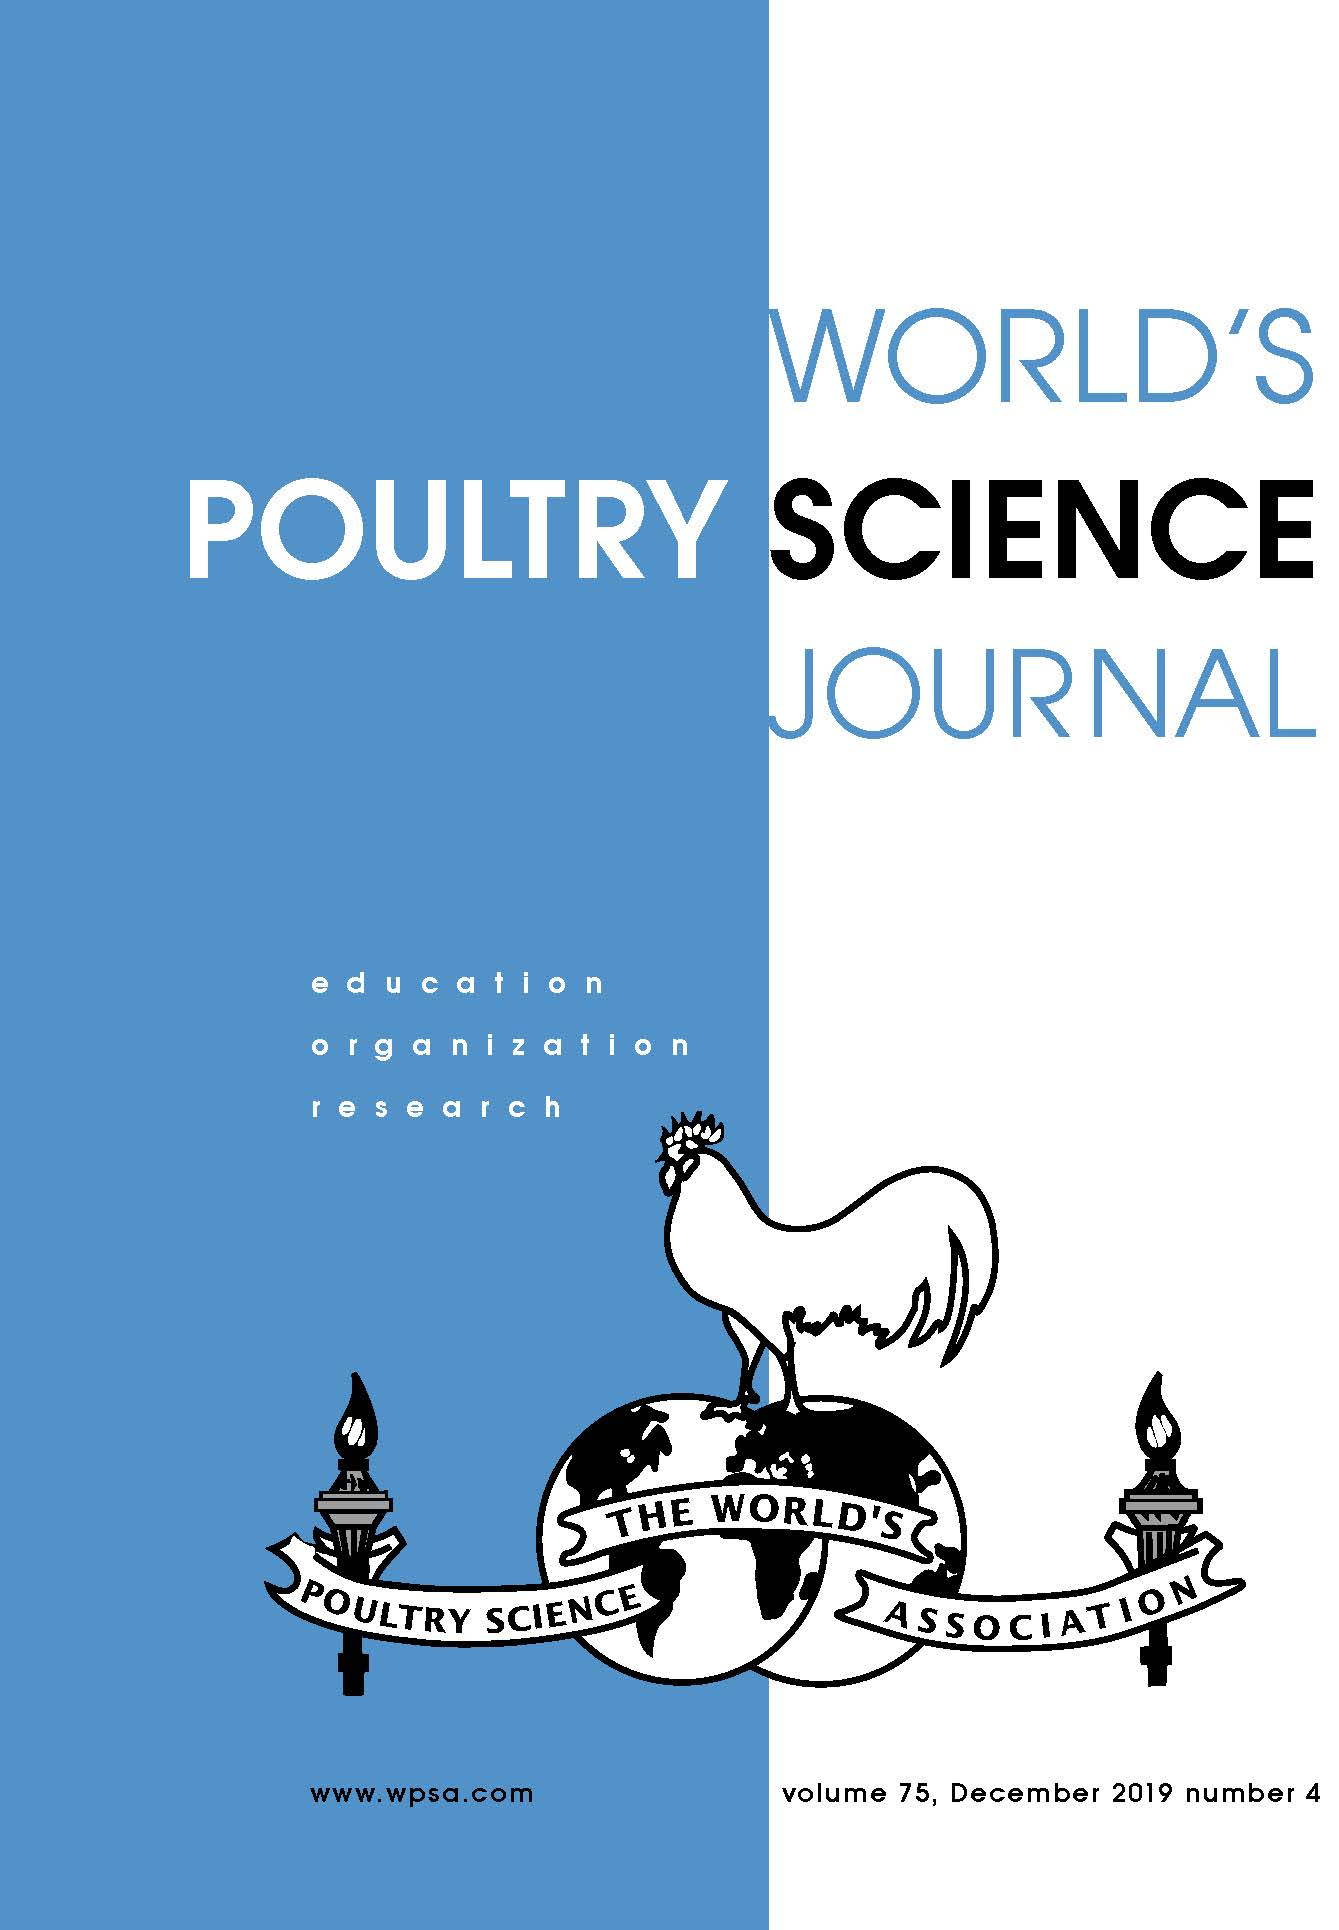 World's Poultry Science Journal